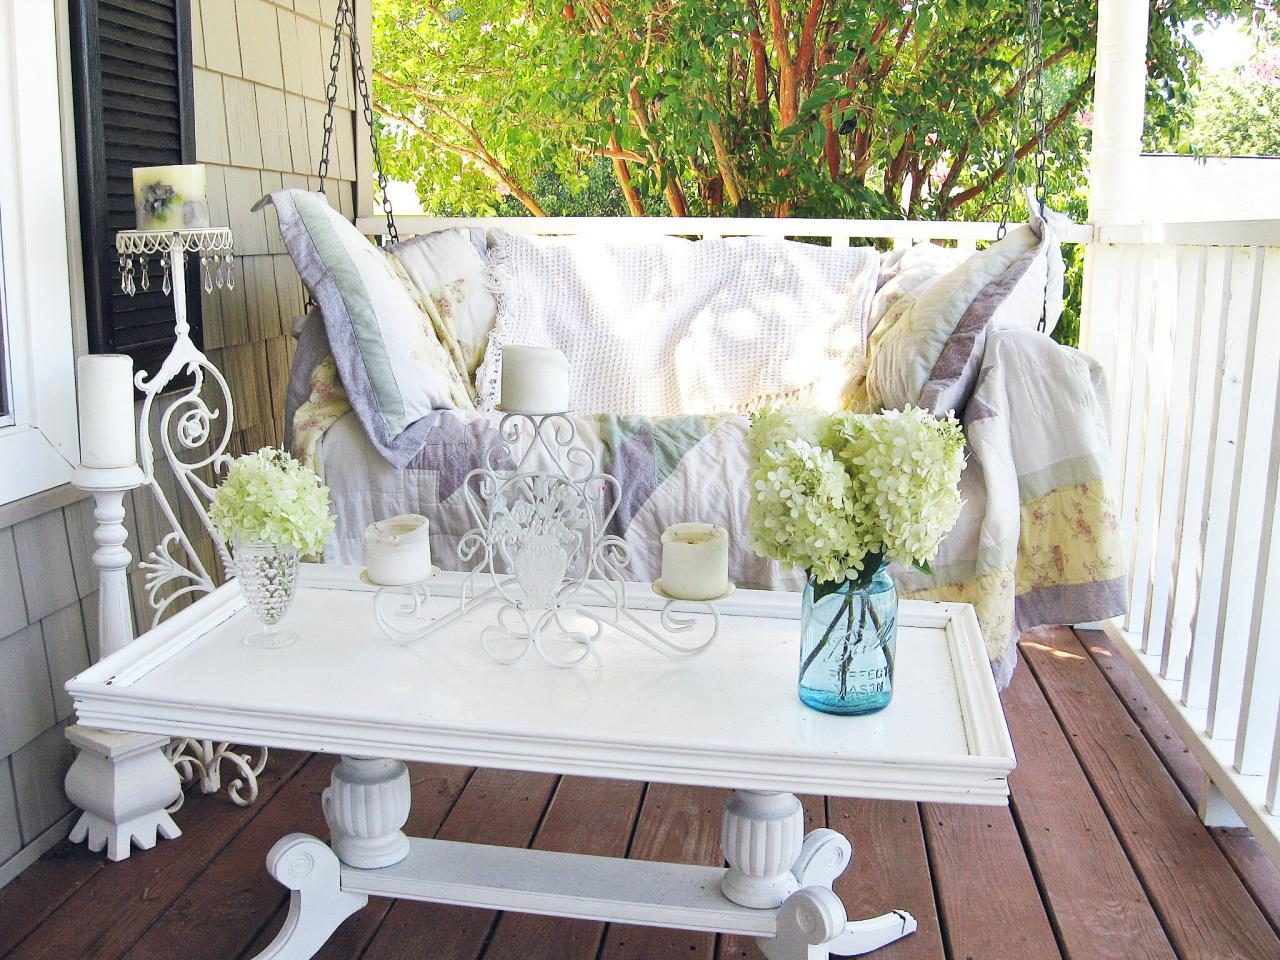 Shabby chic decorating ideas for porches and gardens Cottage porch decorating ideas